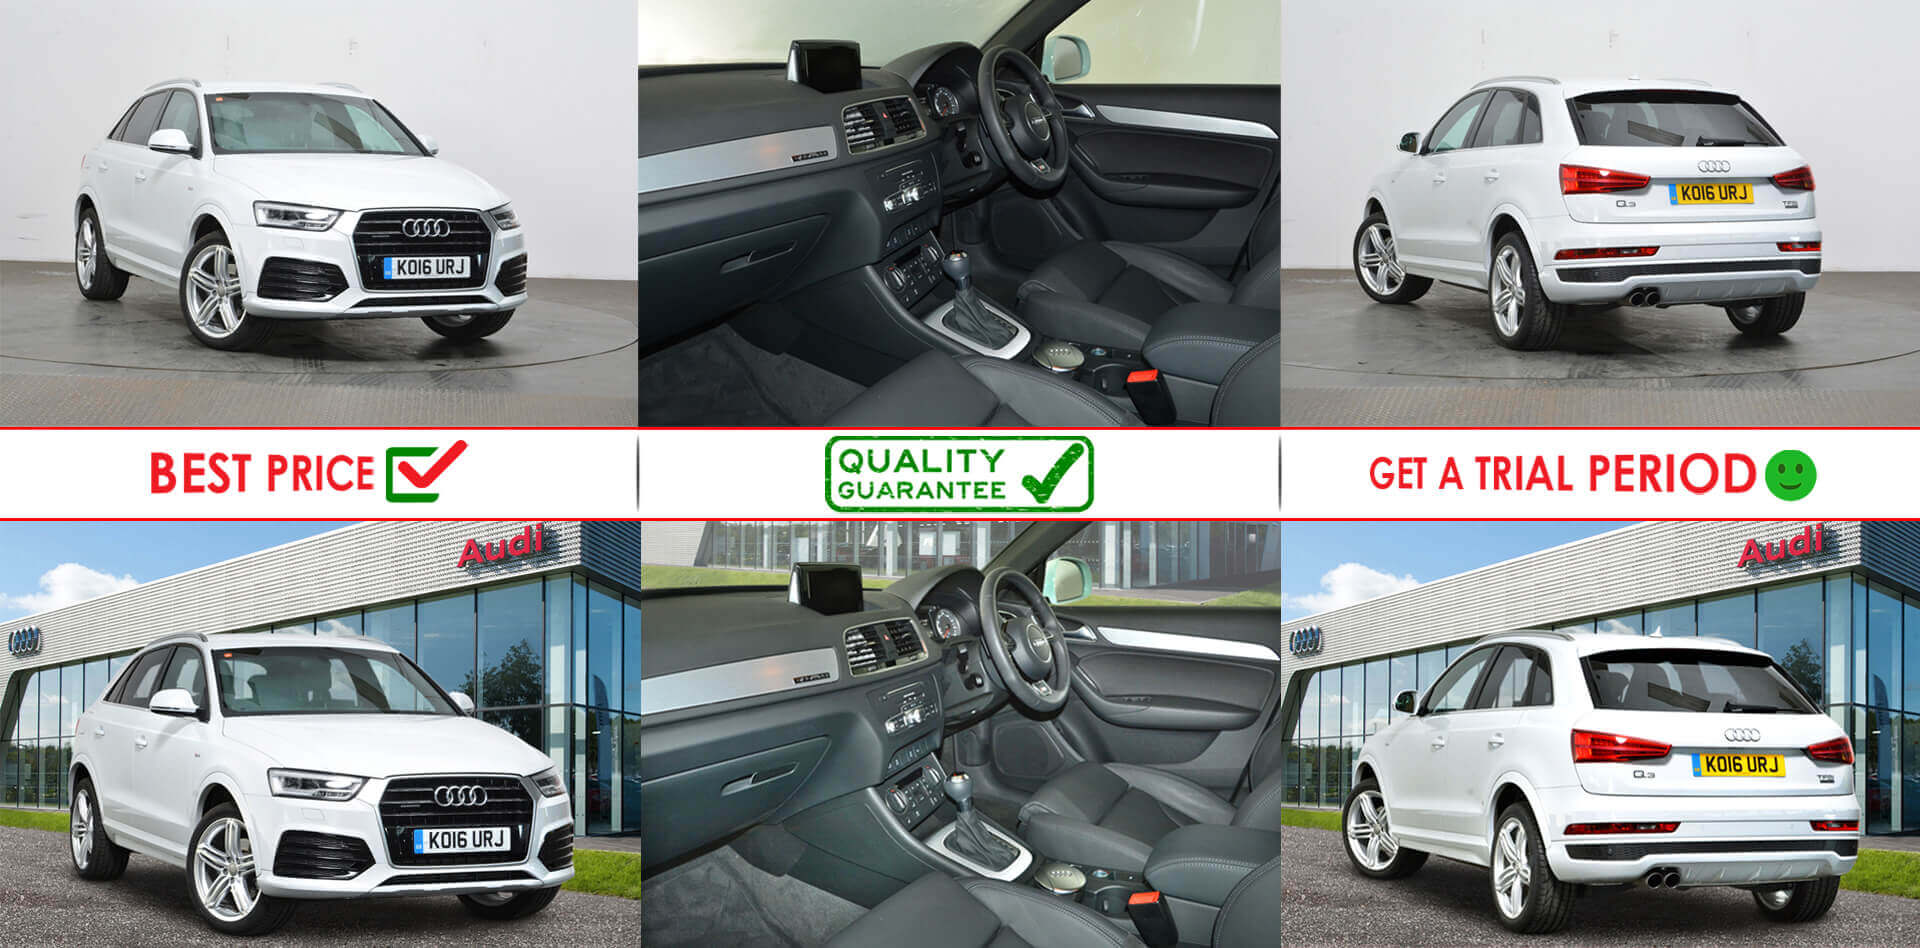 automobile image editing services